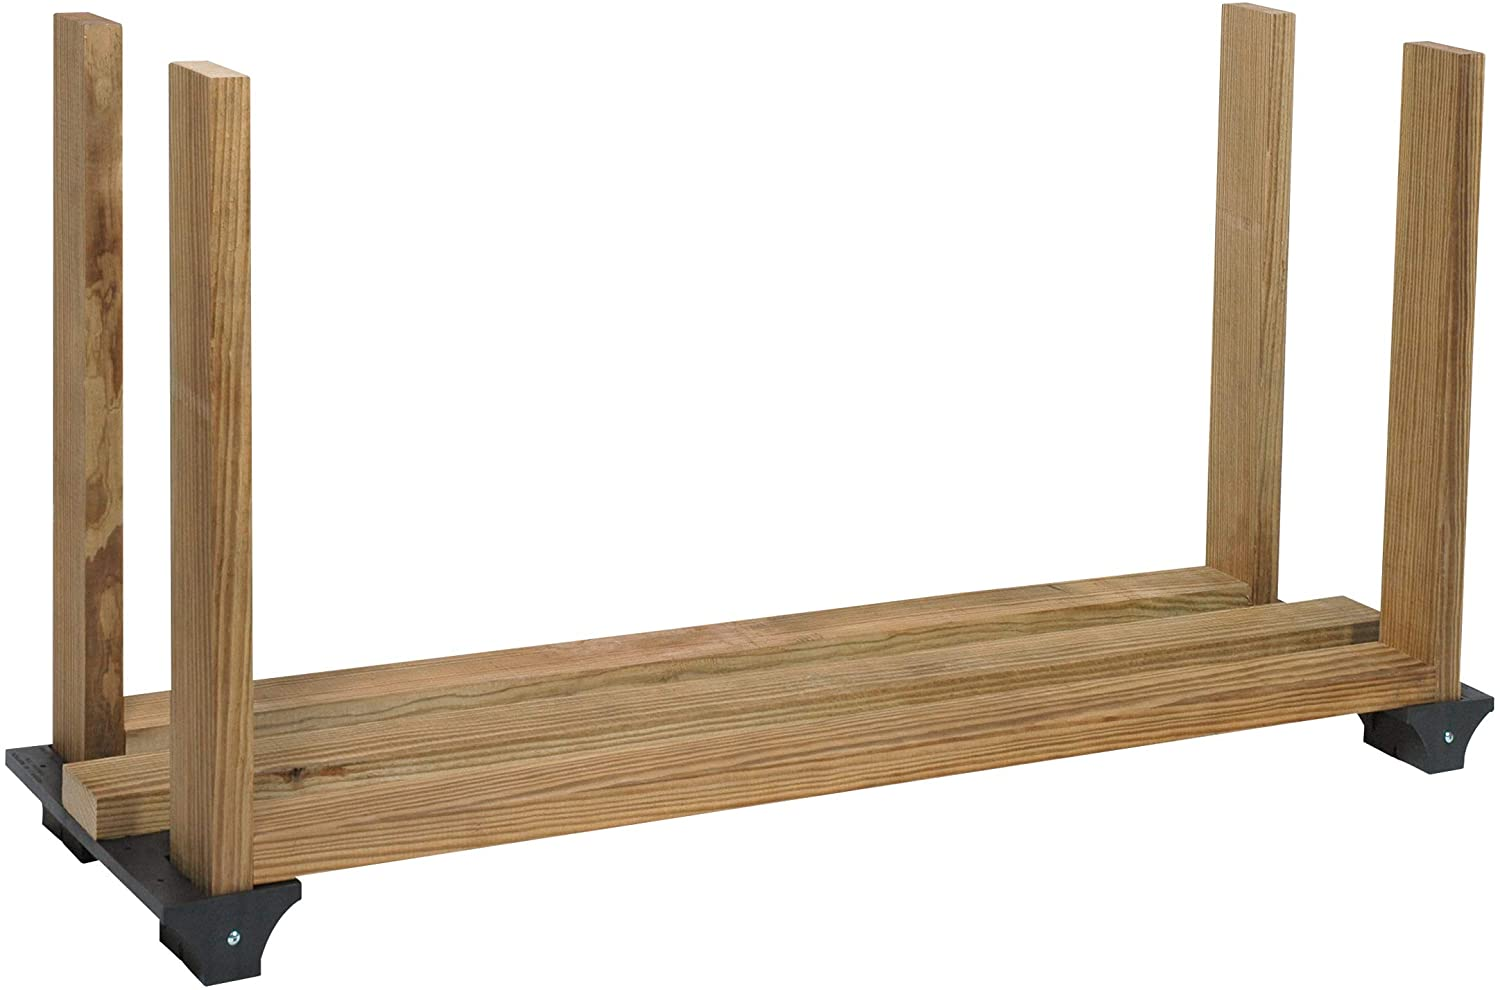 We OFFer at cheap prices store 2x4basics 90144 Firewood Rack System Black